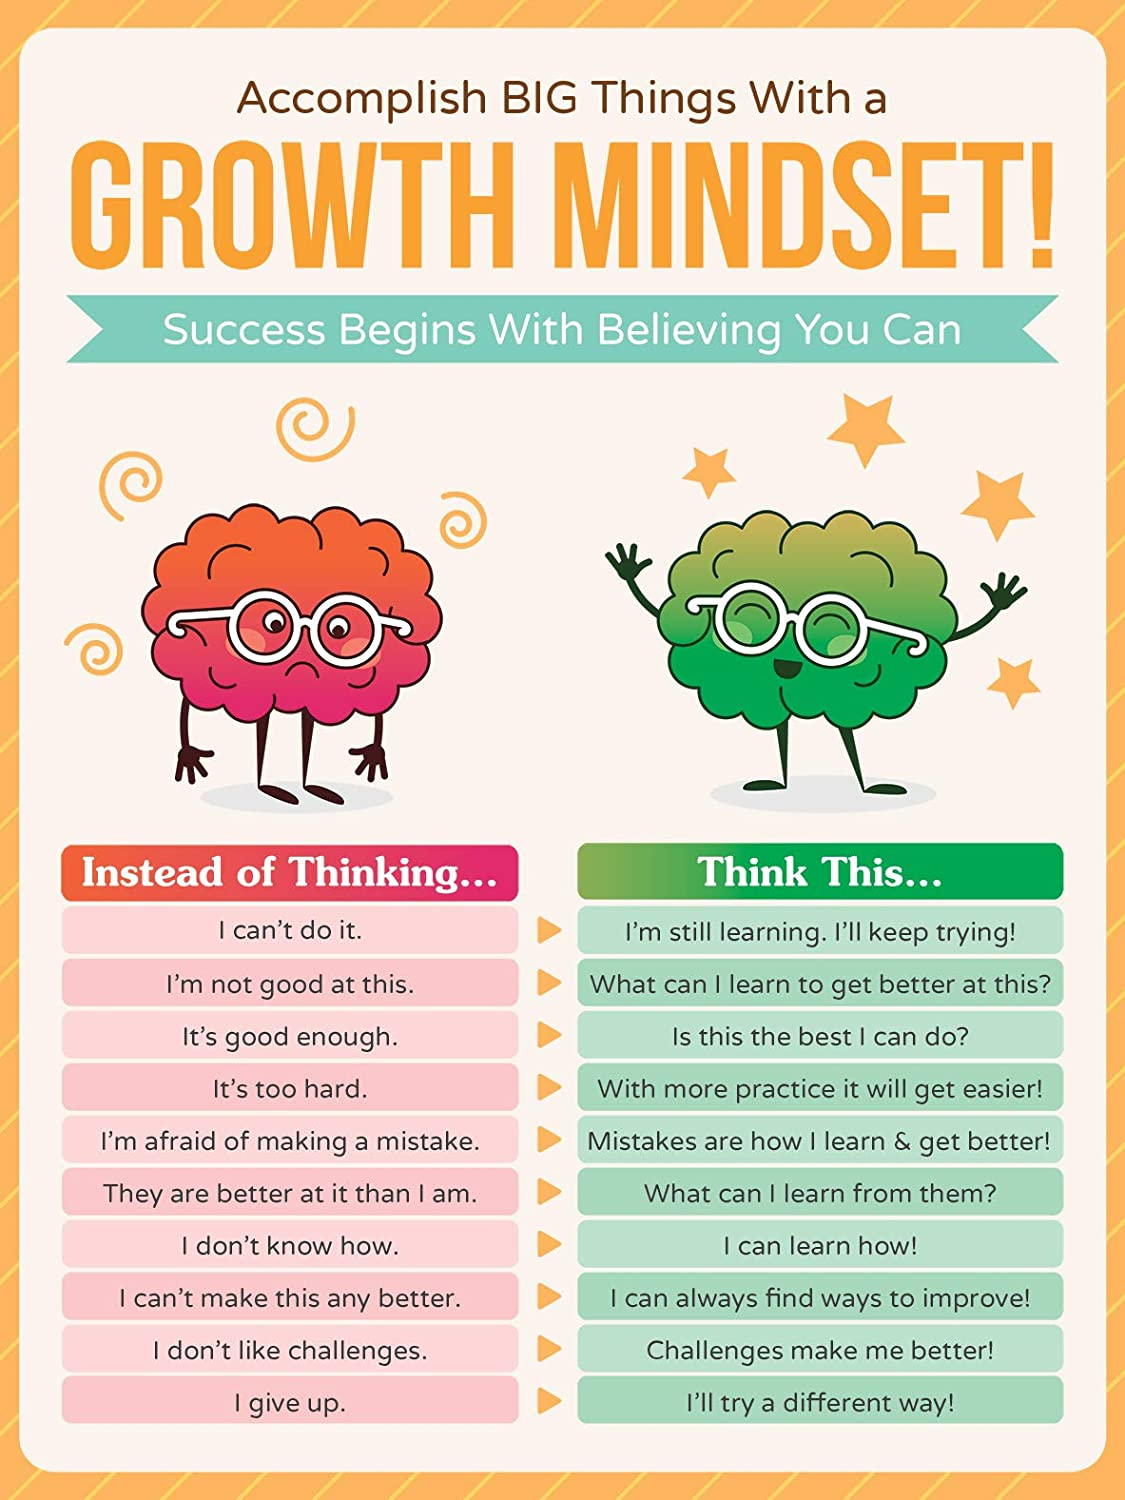 Amazon.com: HoneyKICK Growth Mindset Poster - 12 x 16 Educational Poster  for Classroom Decoration, Bulletin Boards - Inspire & Motivate Young  Students: Home & Kitchen